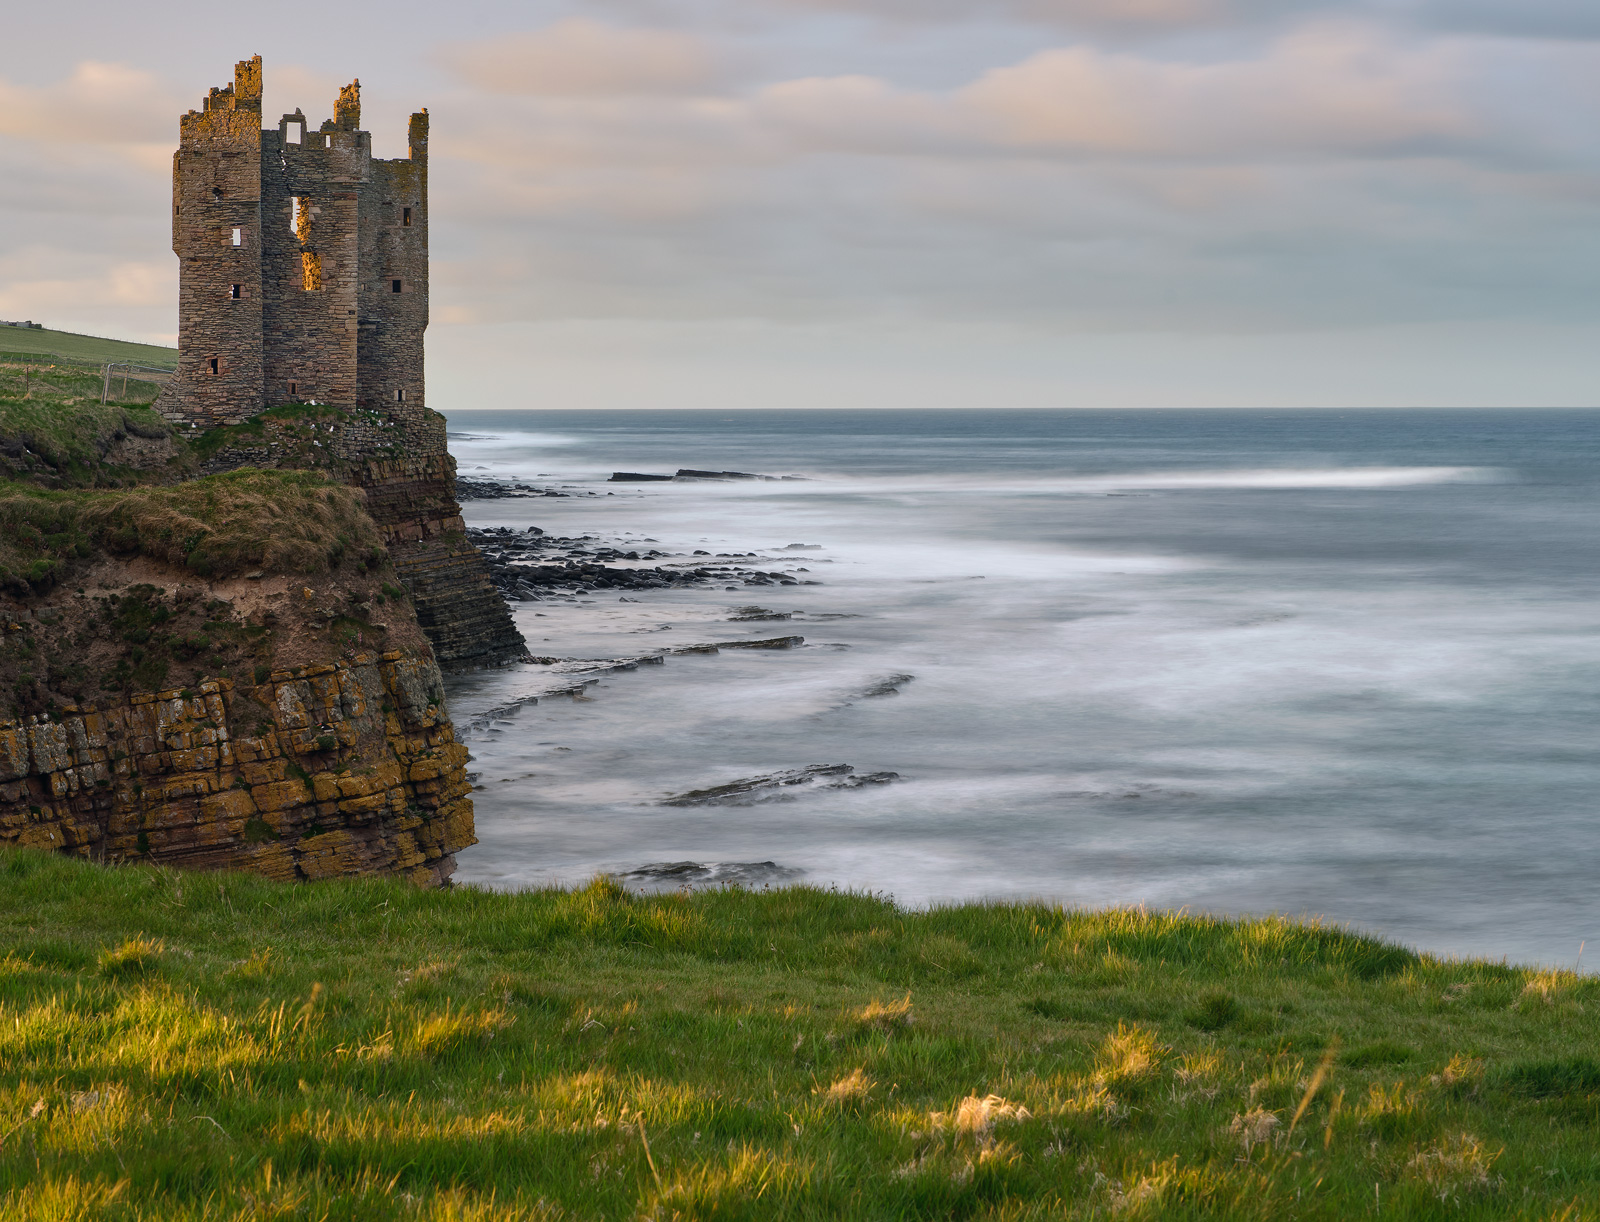 Sunset light flickers over Keiss Castle at high tide on the Caithness coast.